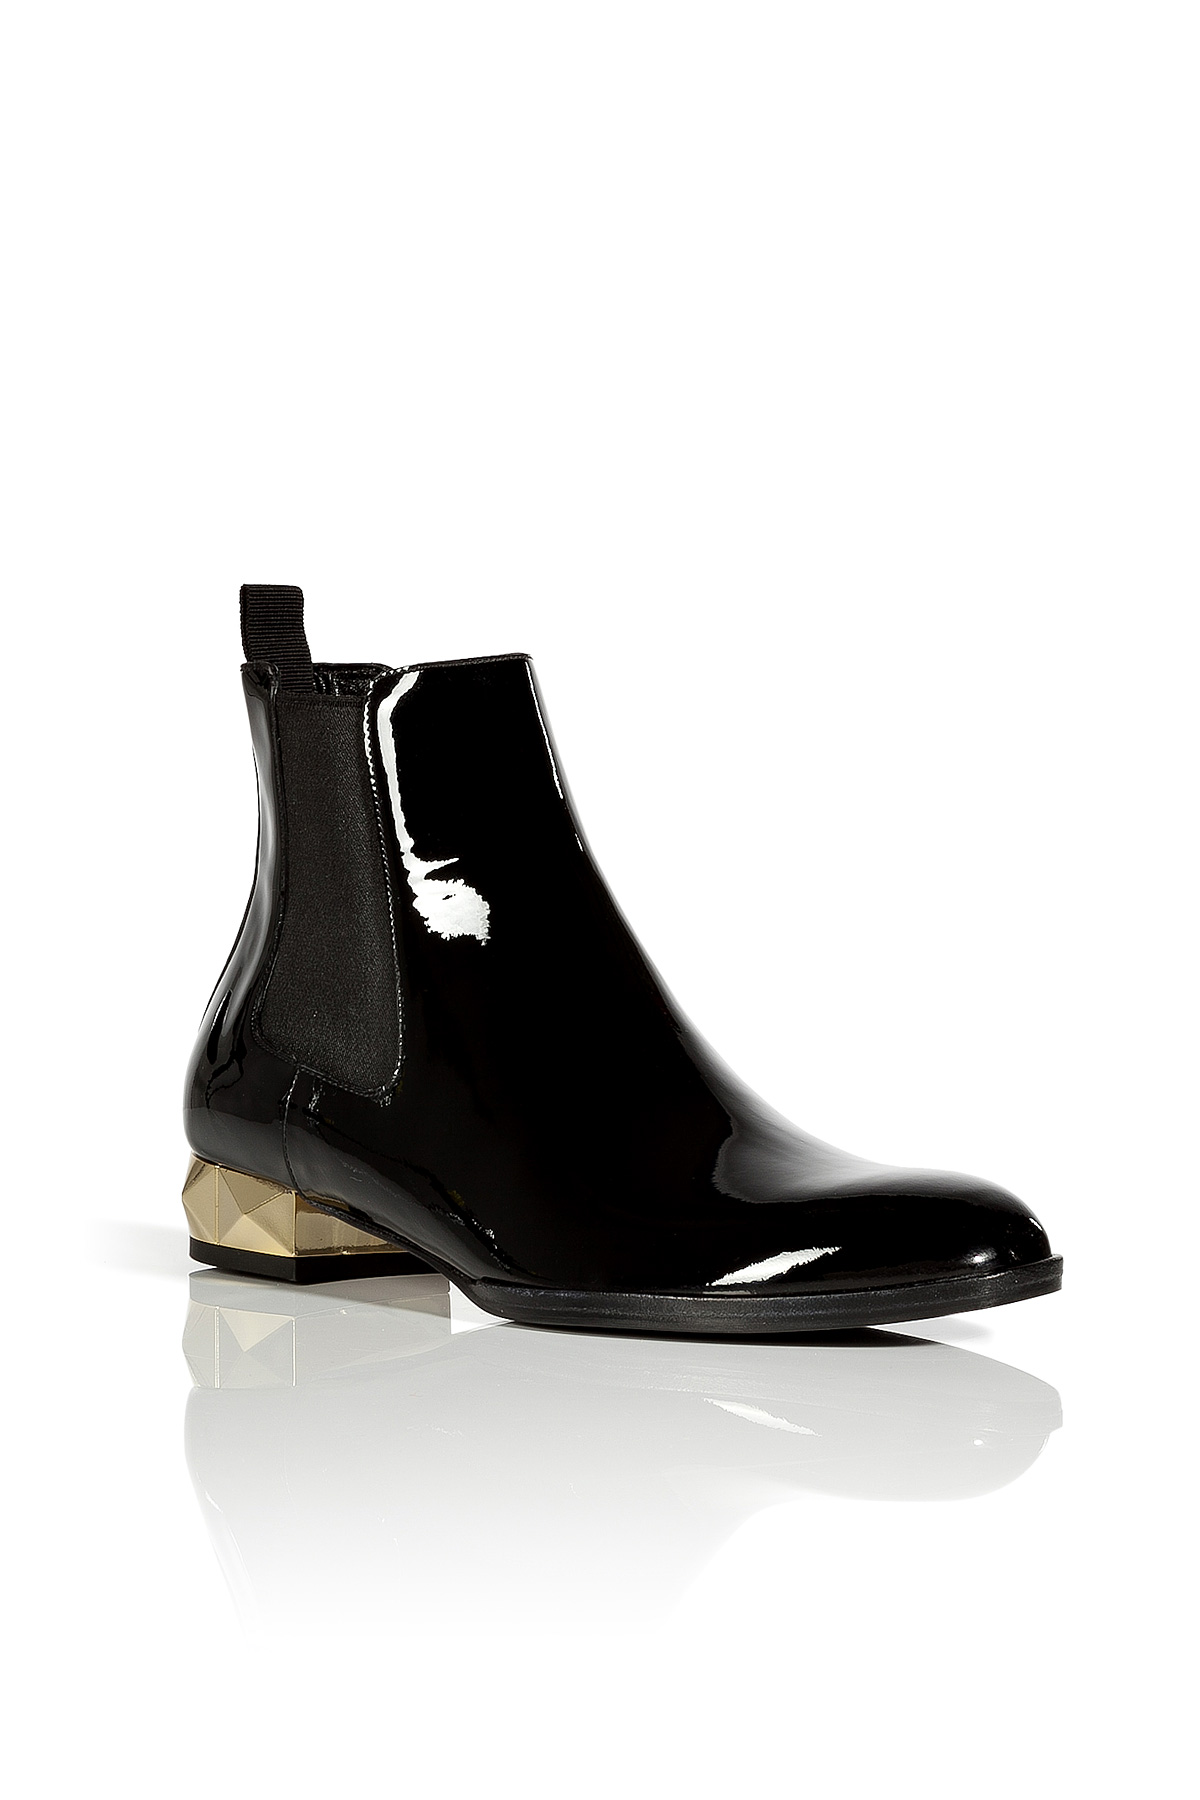 valentino black and gold patent leather flat ankle boots